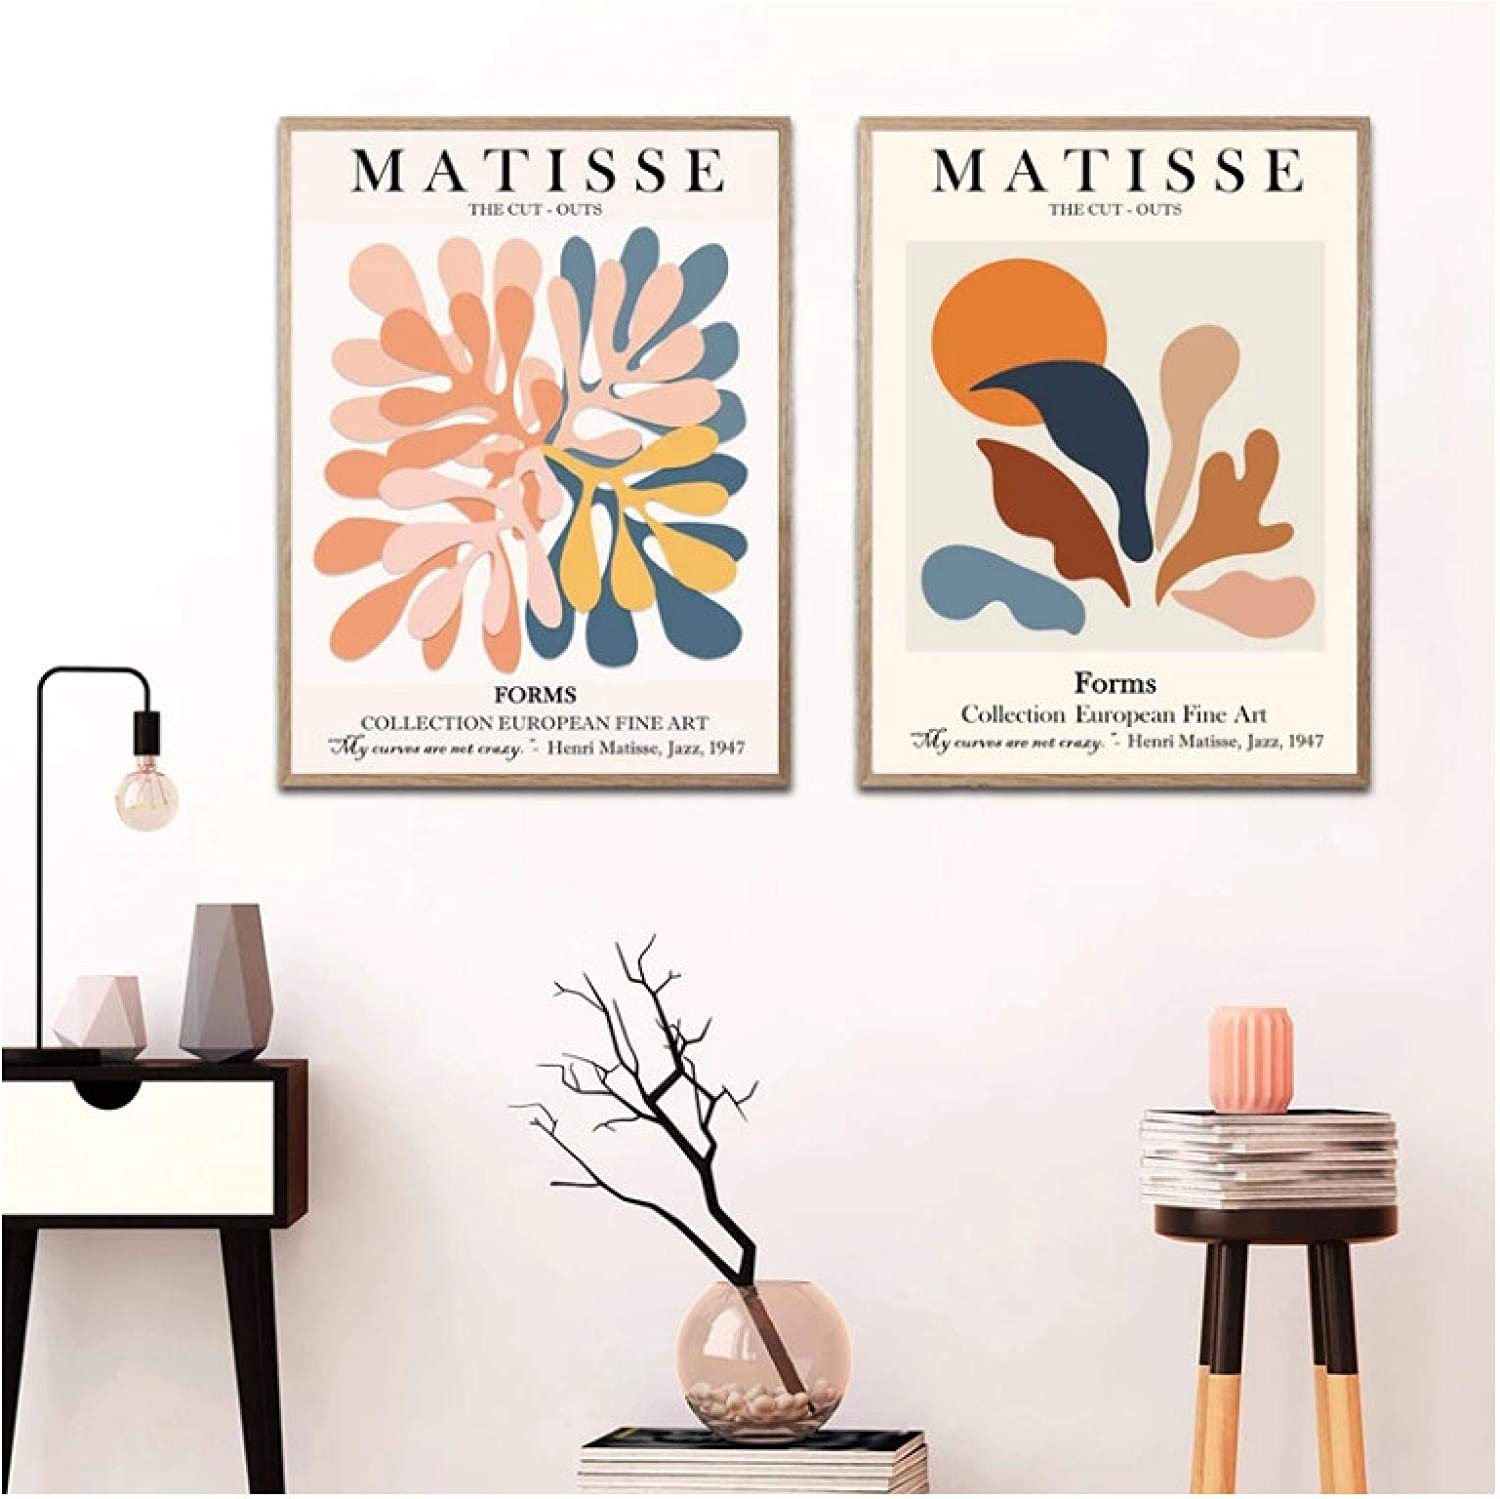 Cut Outs Drawing Famous Print Exhibition Print Set of 2 Contemporary  Art Modern Wall Gallery Henri Matisse Print Printable Wall Art